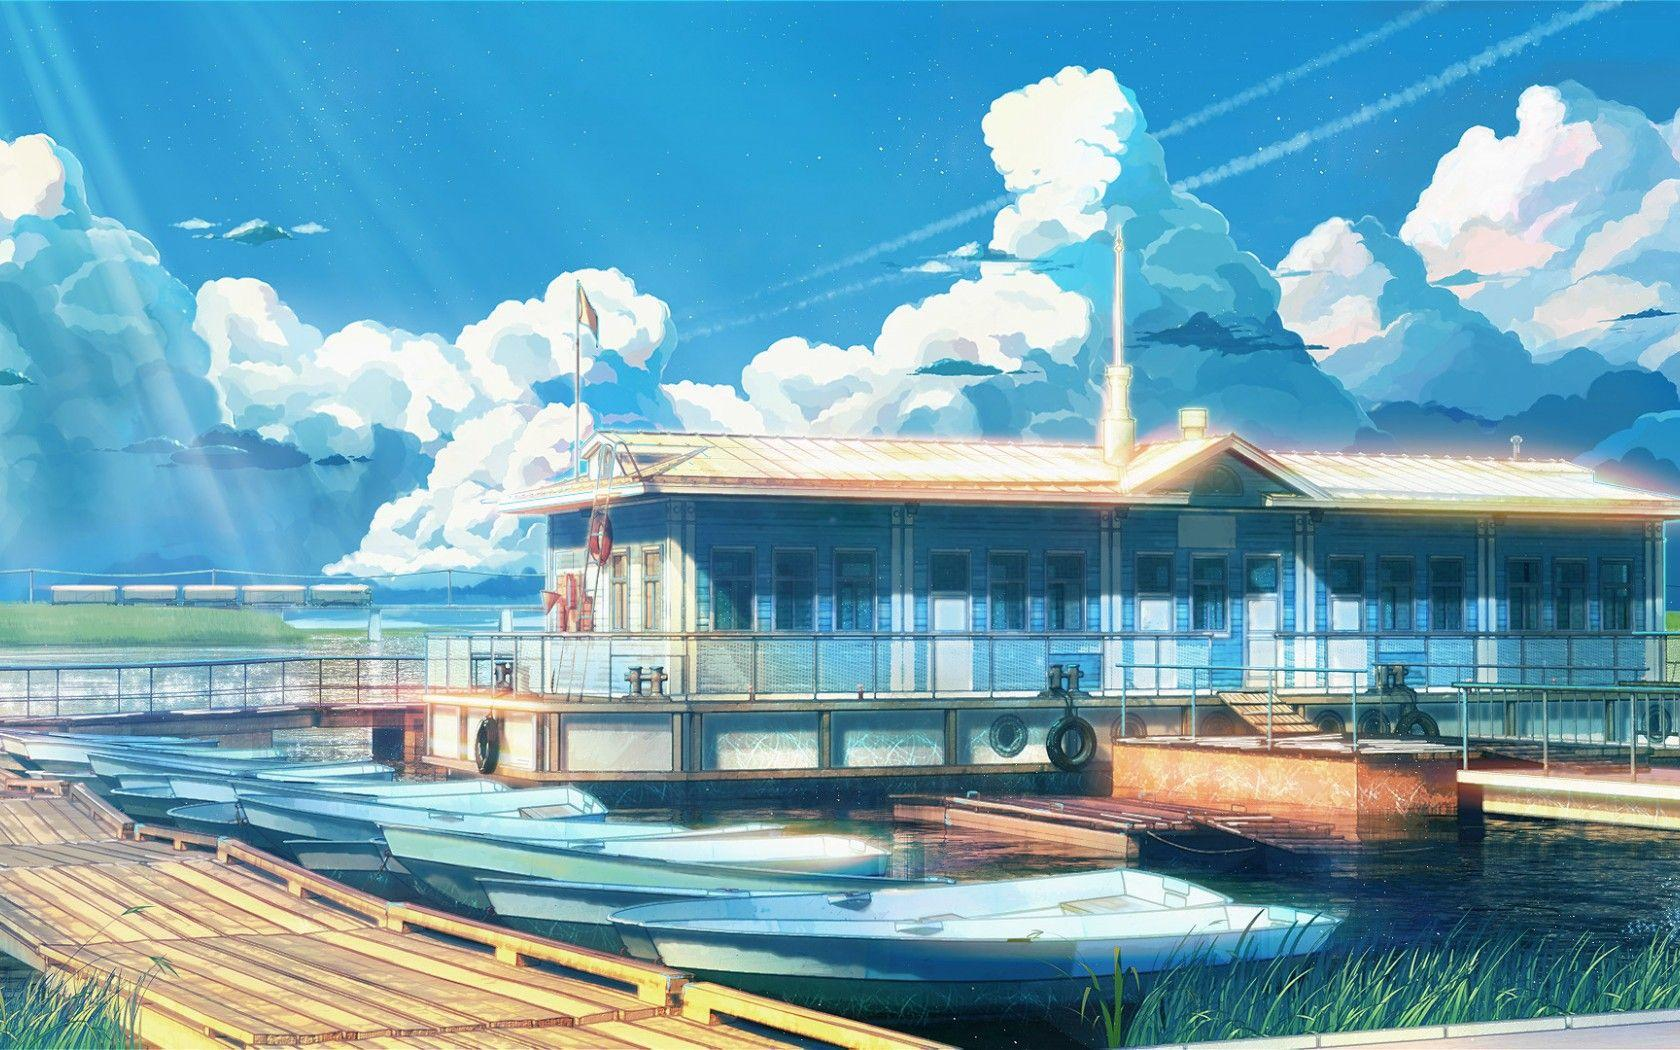 Anime Backgrounds Wallpapers